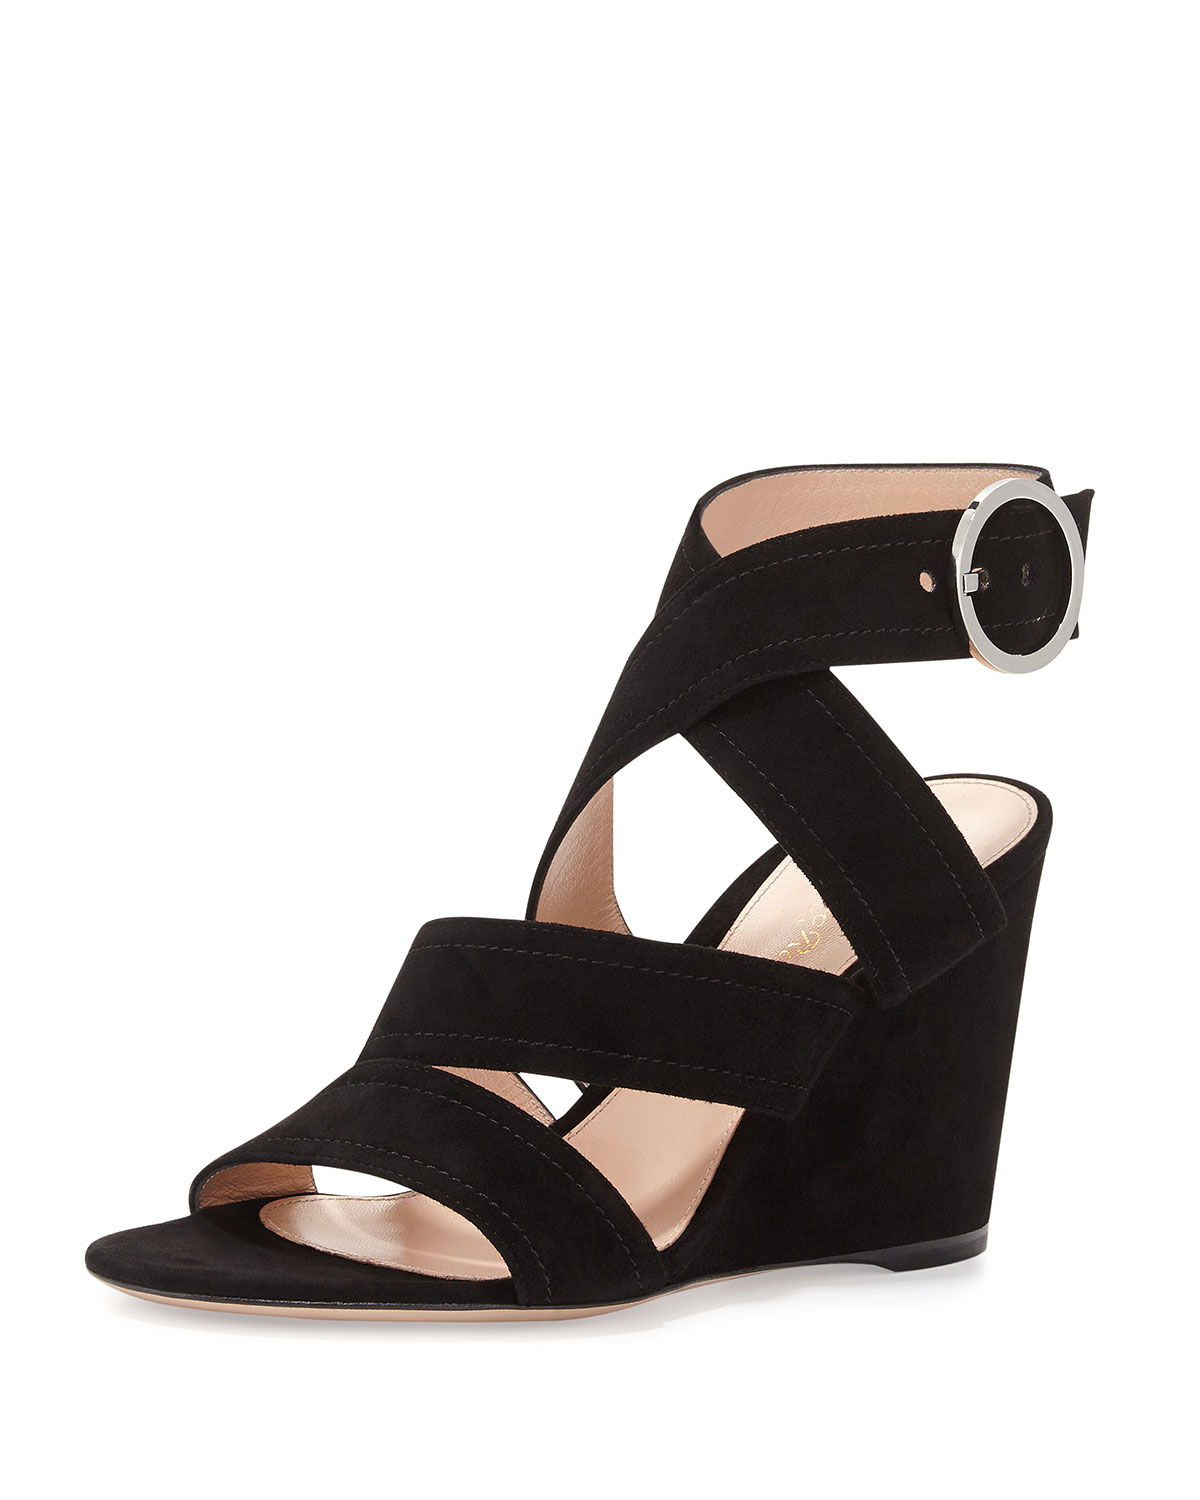 0eae412643f3a Gianvito Rossi Rylee Suede 85mm Wedge Sandals